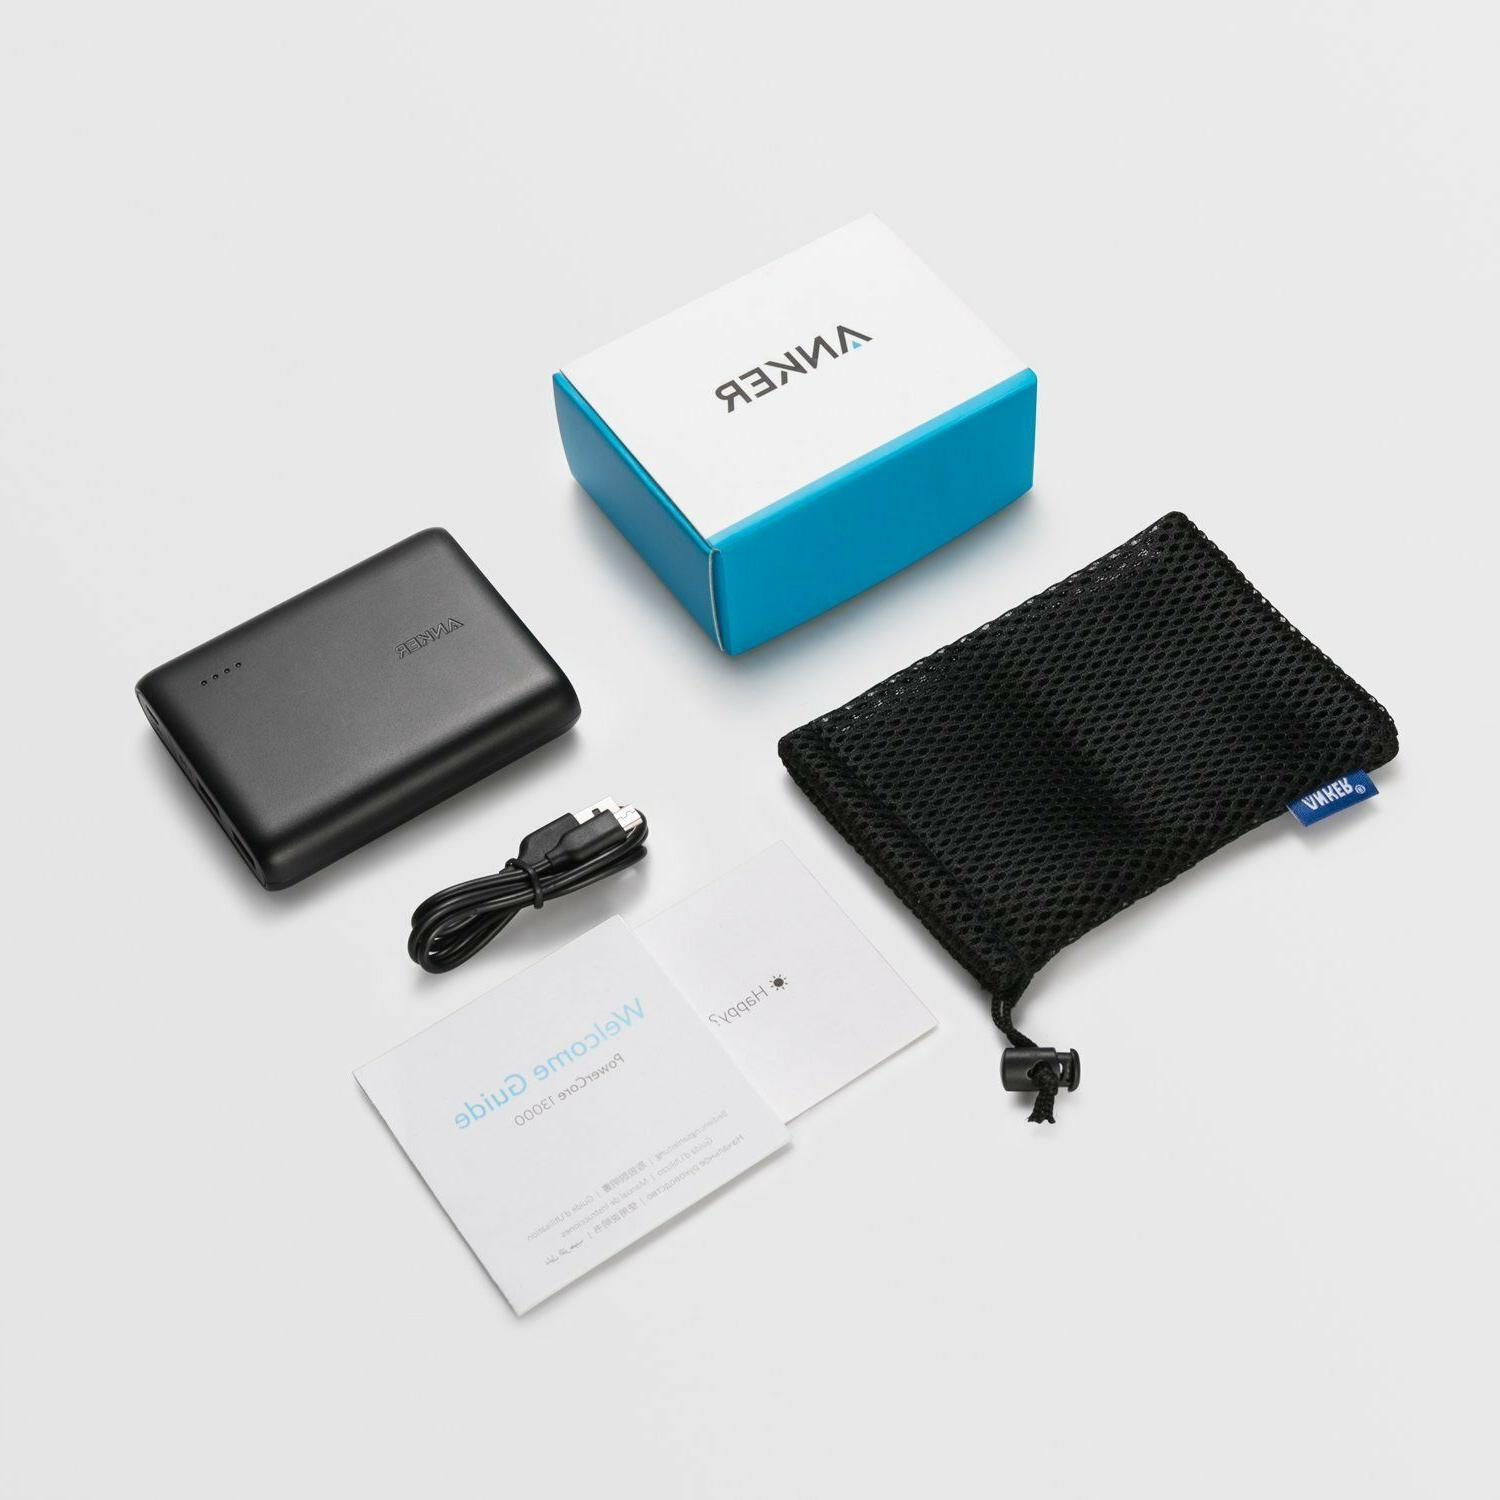 Anker PowerCore 13000, Compact 13000mAh 2-Port Charger